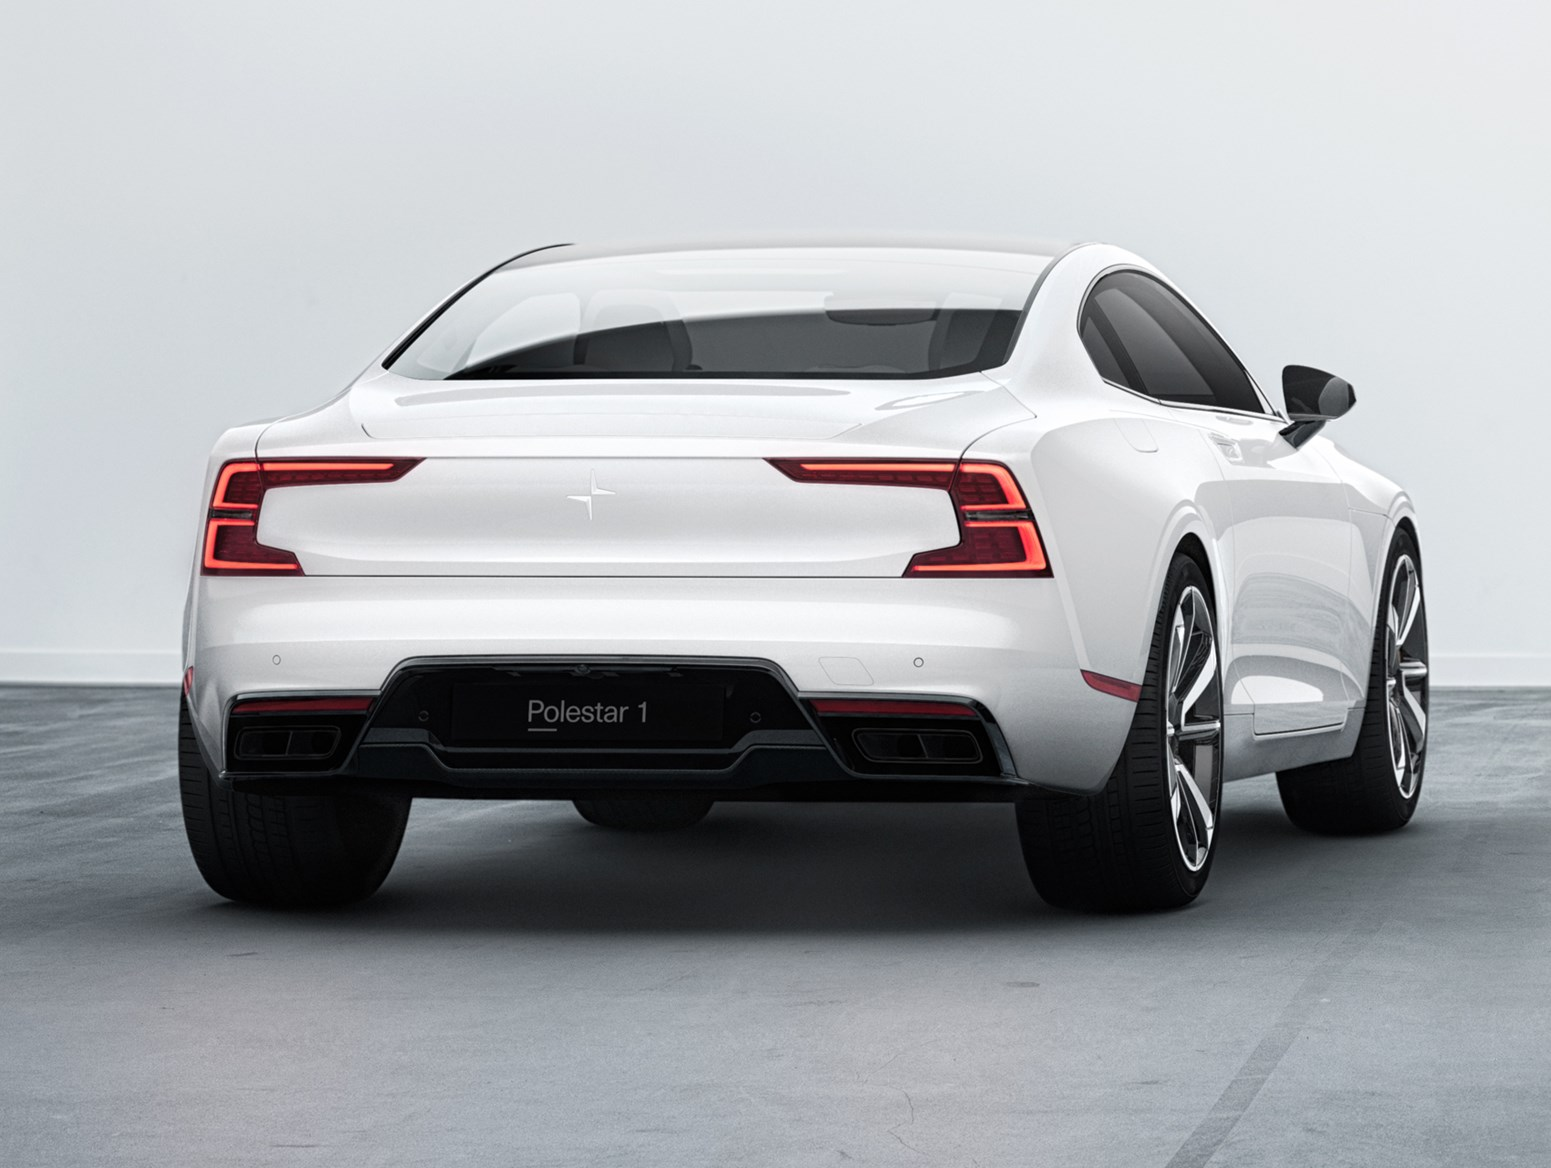 Fff likewise Xc T Geartronic Inscription as well Px Volvo Concept Coupe further Volvo C Convertible Rendering Has Cloth Top And S Styling also Volvo S. on volvo s90